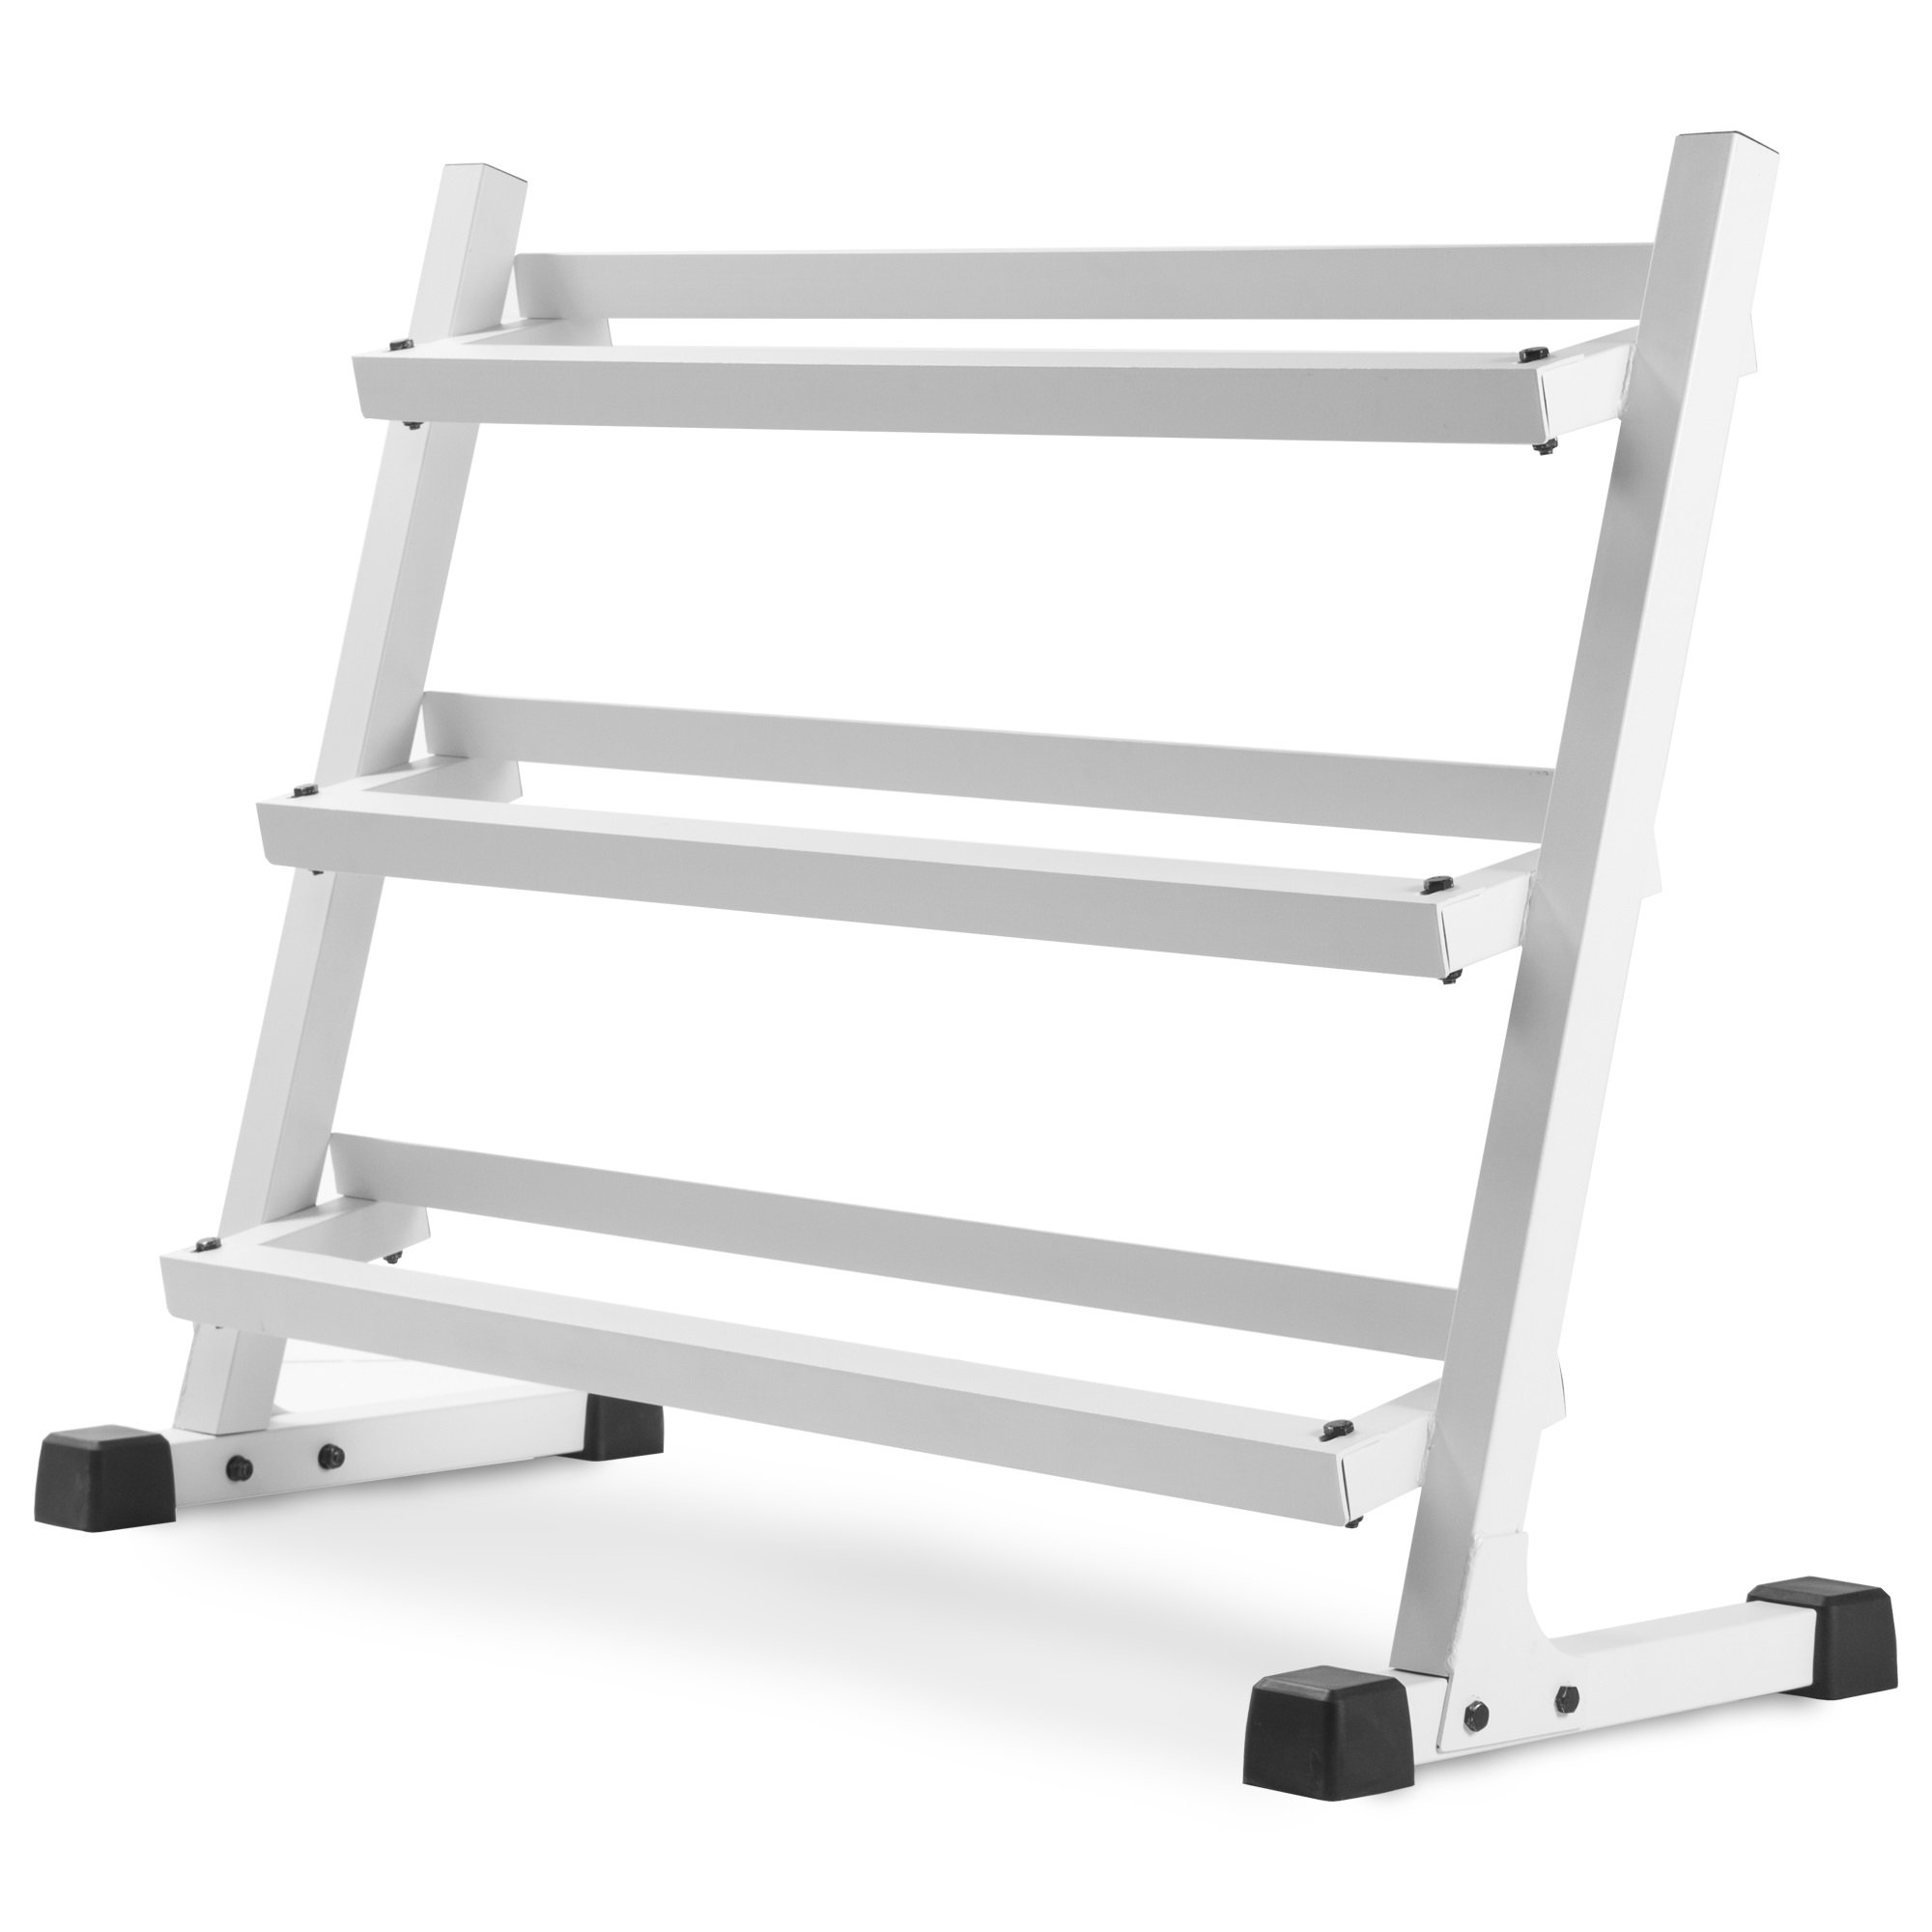 XMark Deluxe Three Tier Rack with Easy-Reach Tilted Shelves (White)